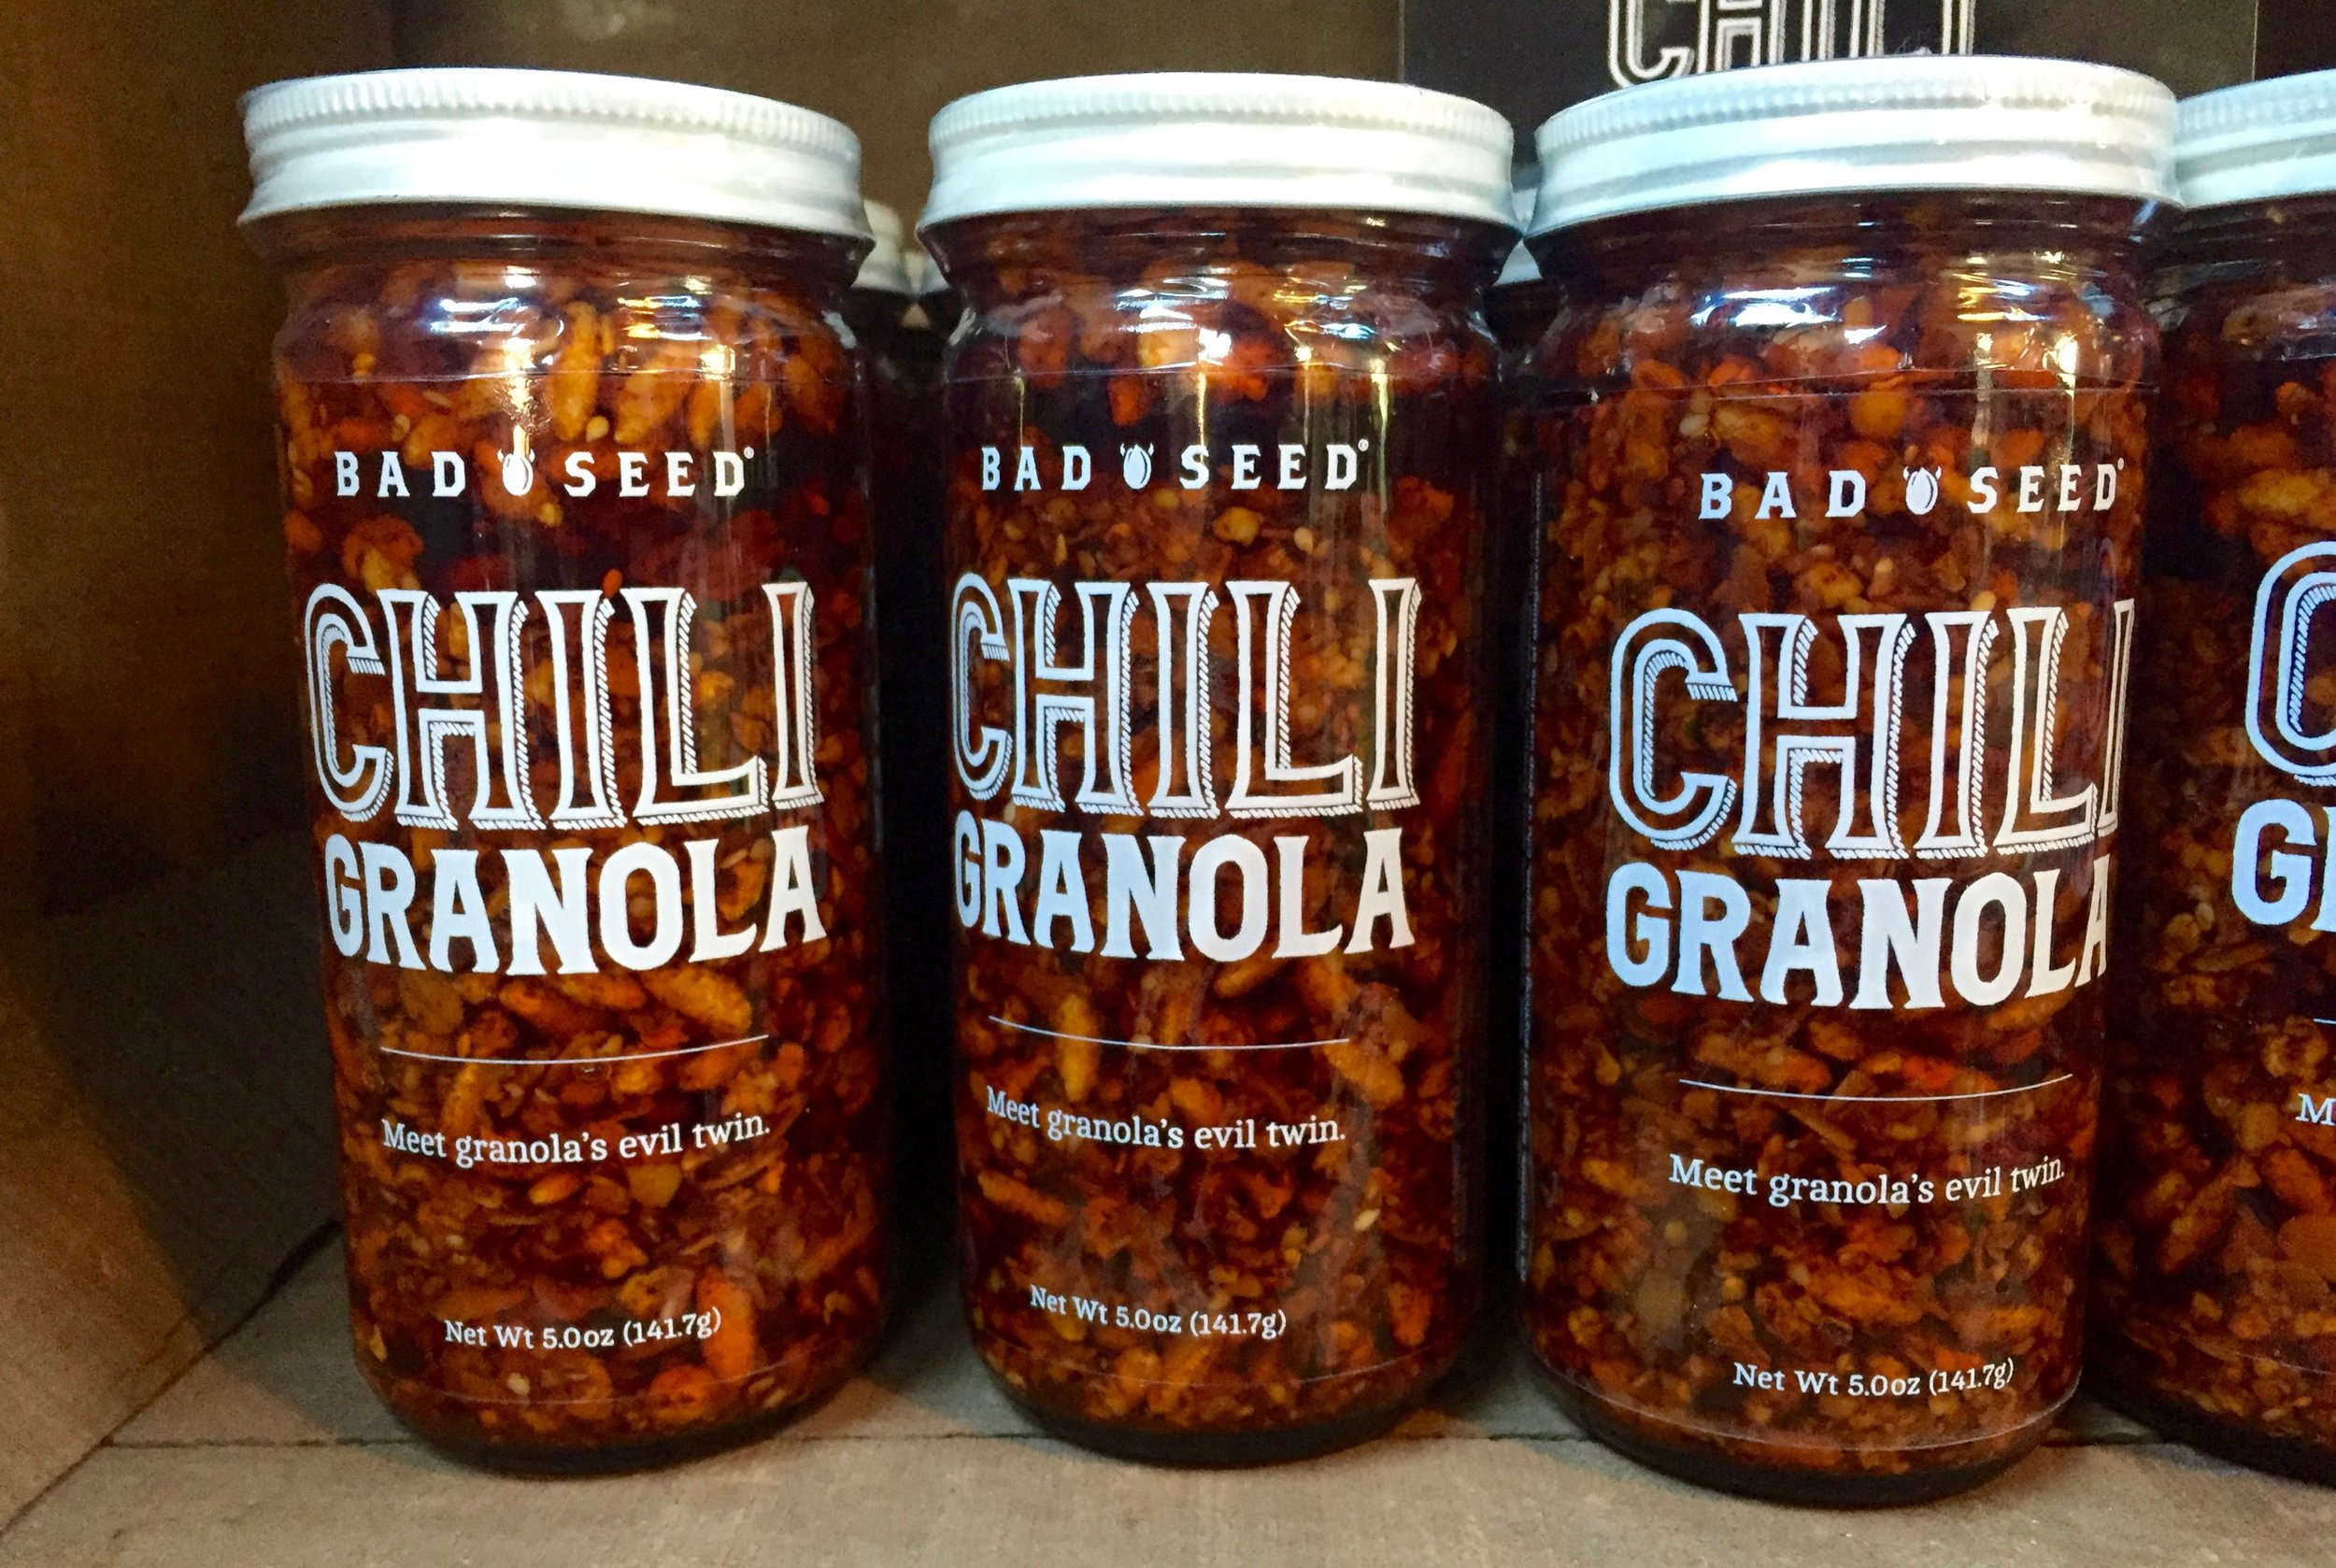 Bad Seed Chili Granola : Meet granola's evil twin. Seriously, guys, what will they think of next?